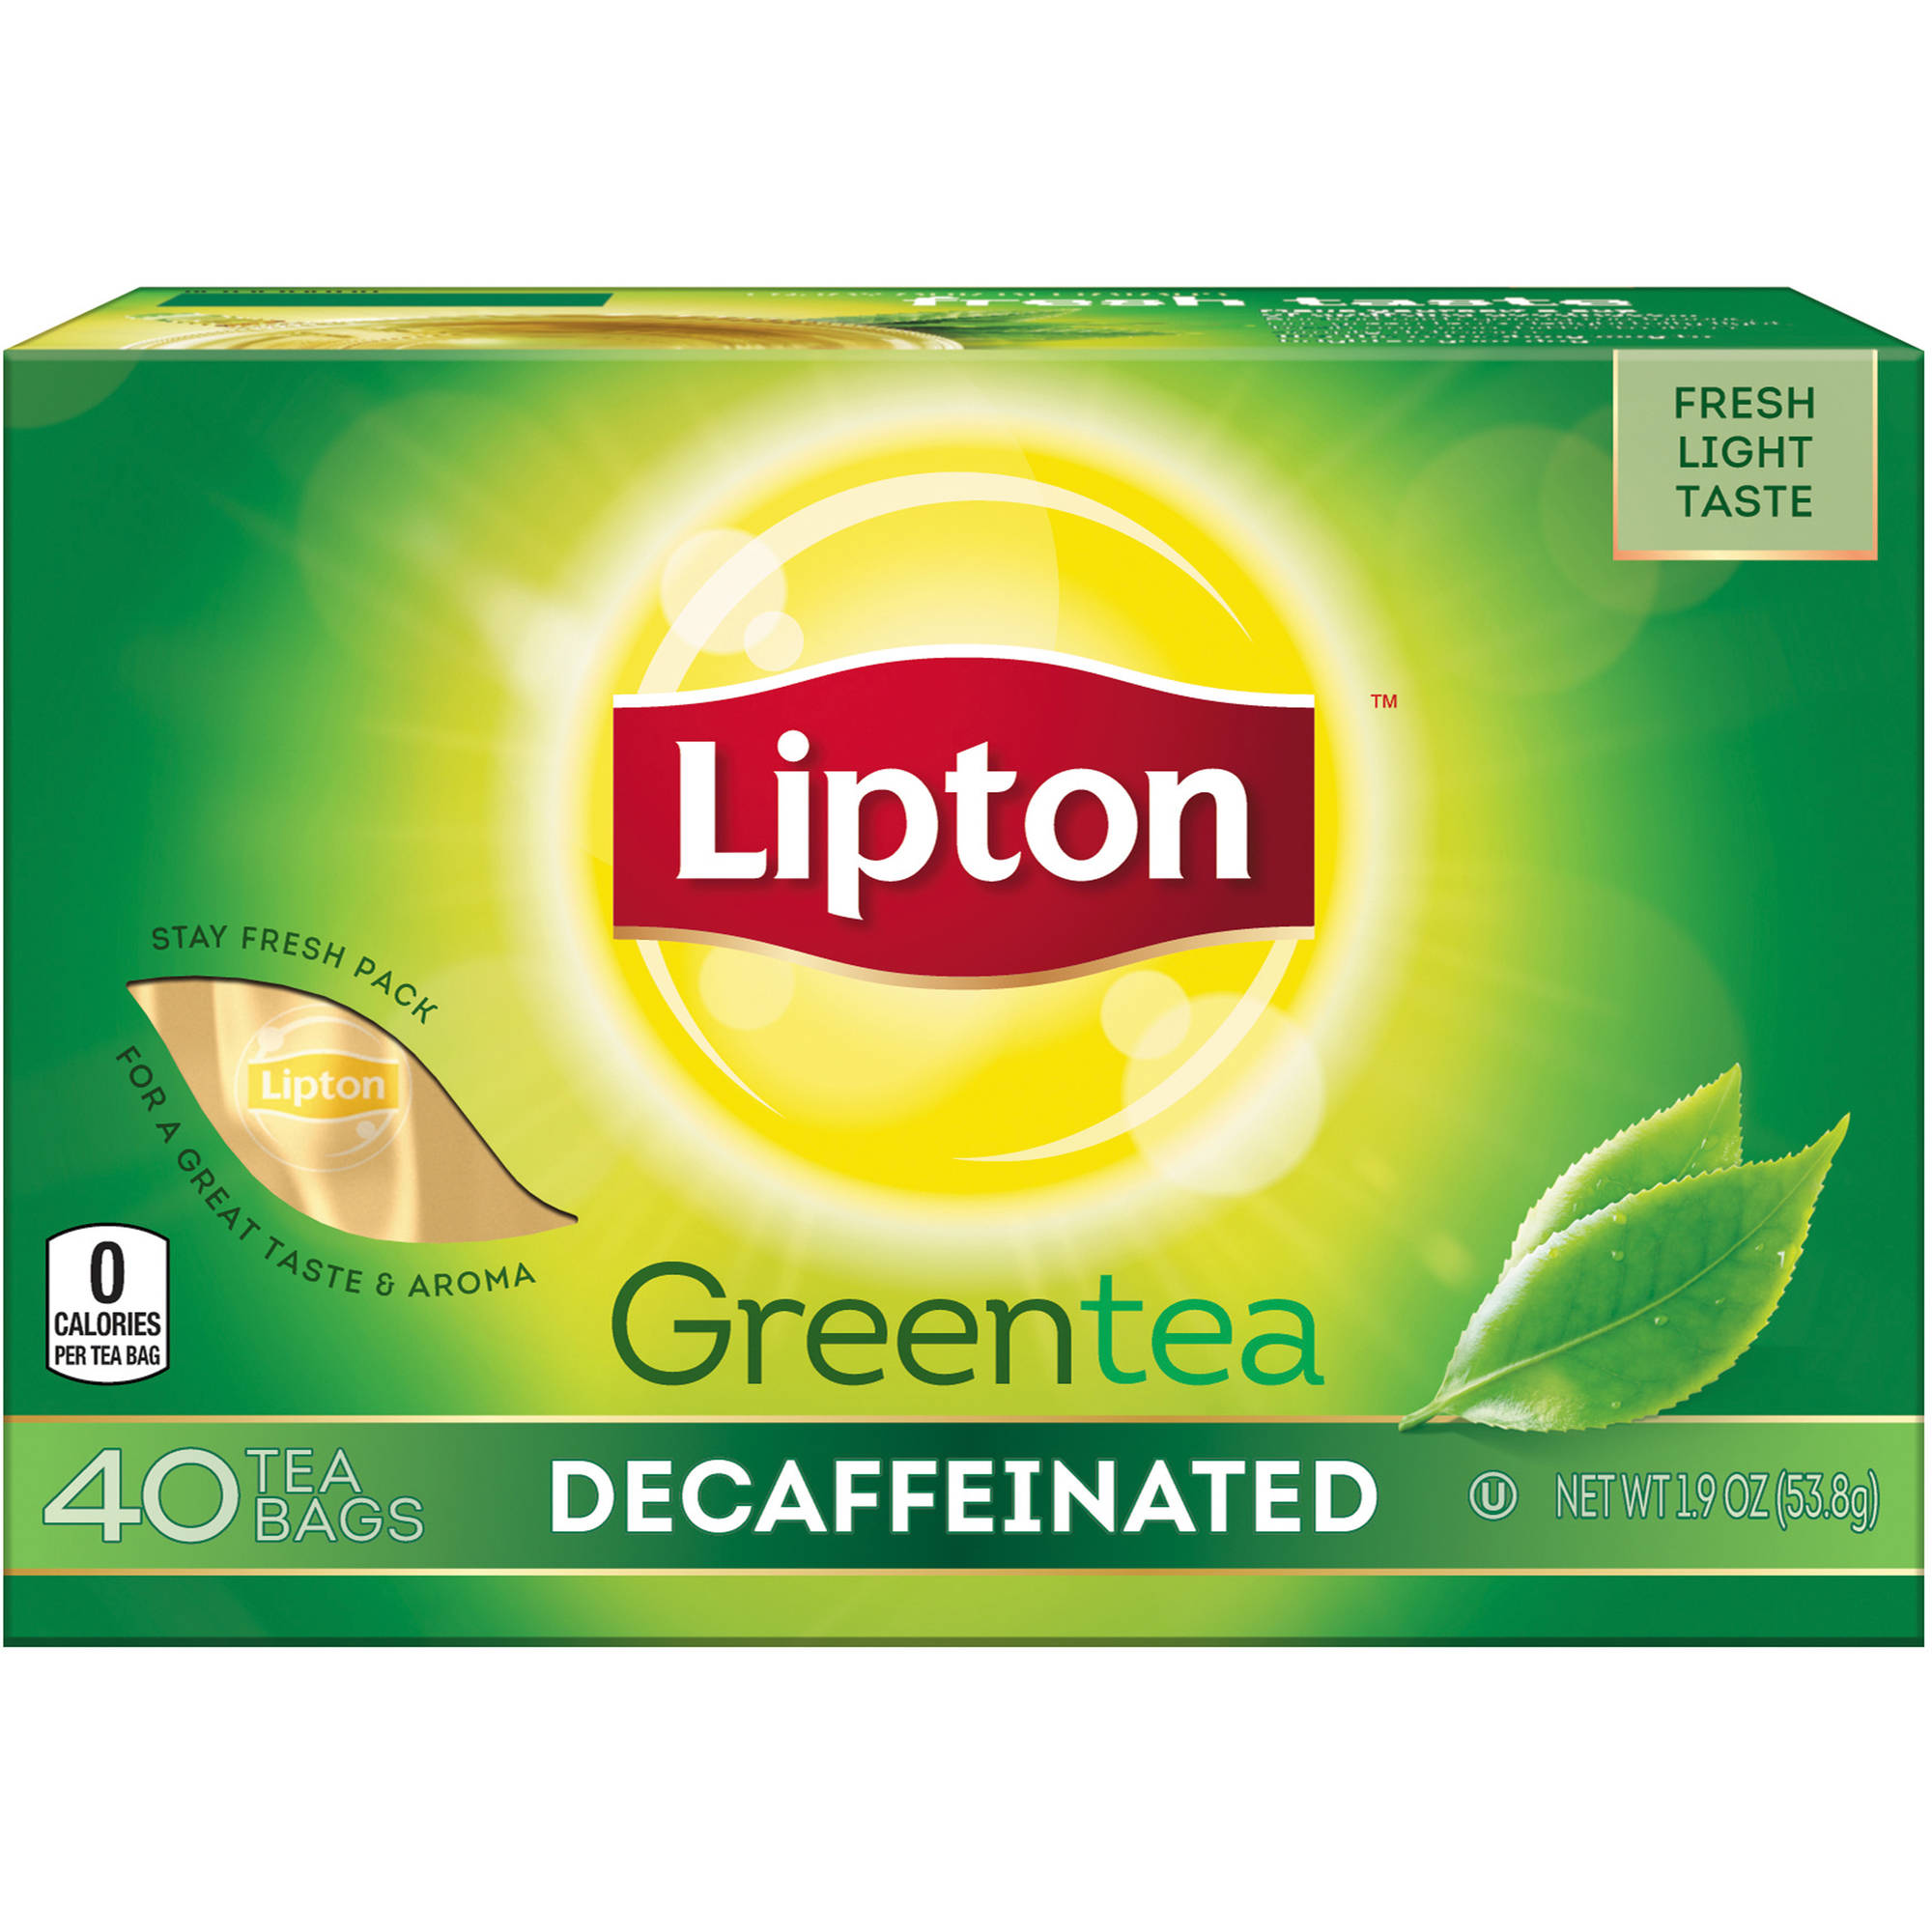 Lipton Decaffeinated Green Tea Bags, 40 ct